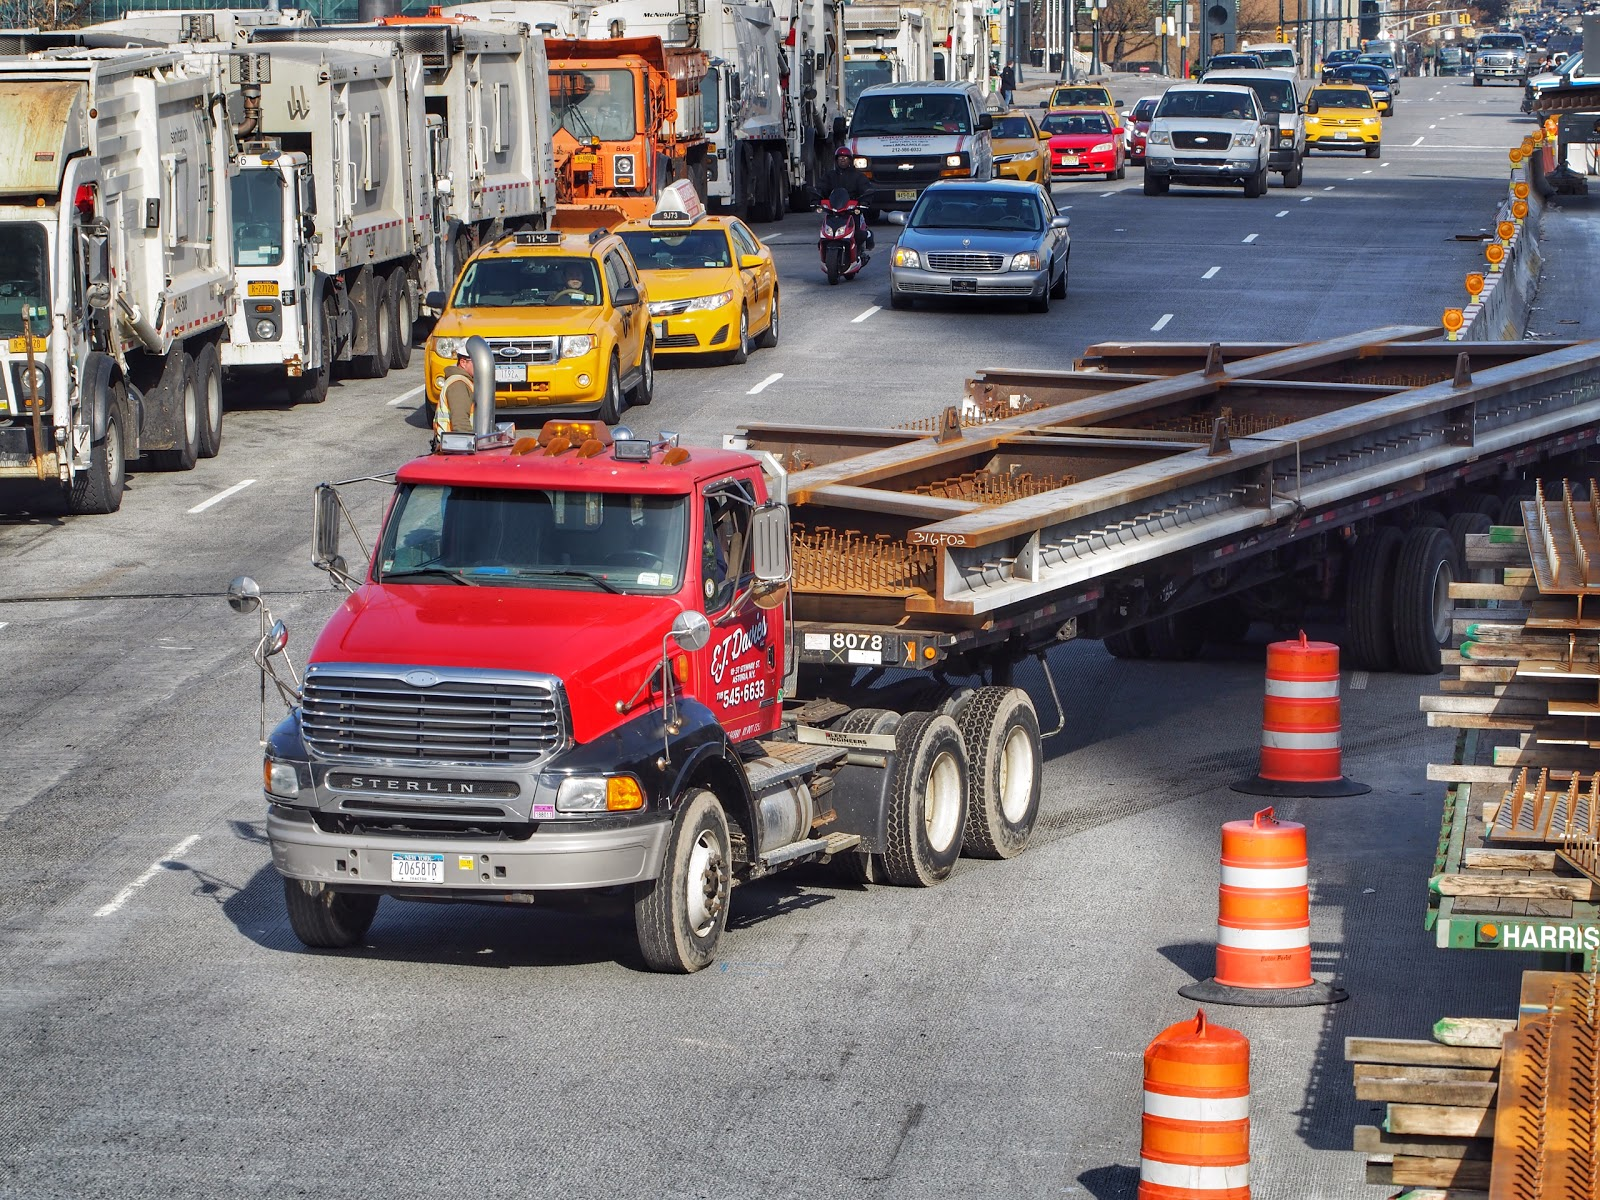 Nails on a Truck #NailsonaTruck #construction #nyc #hudsonyards #steelplates #nails ©2014 Nancy Lundebjerg